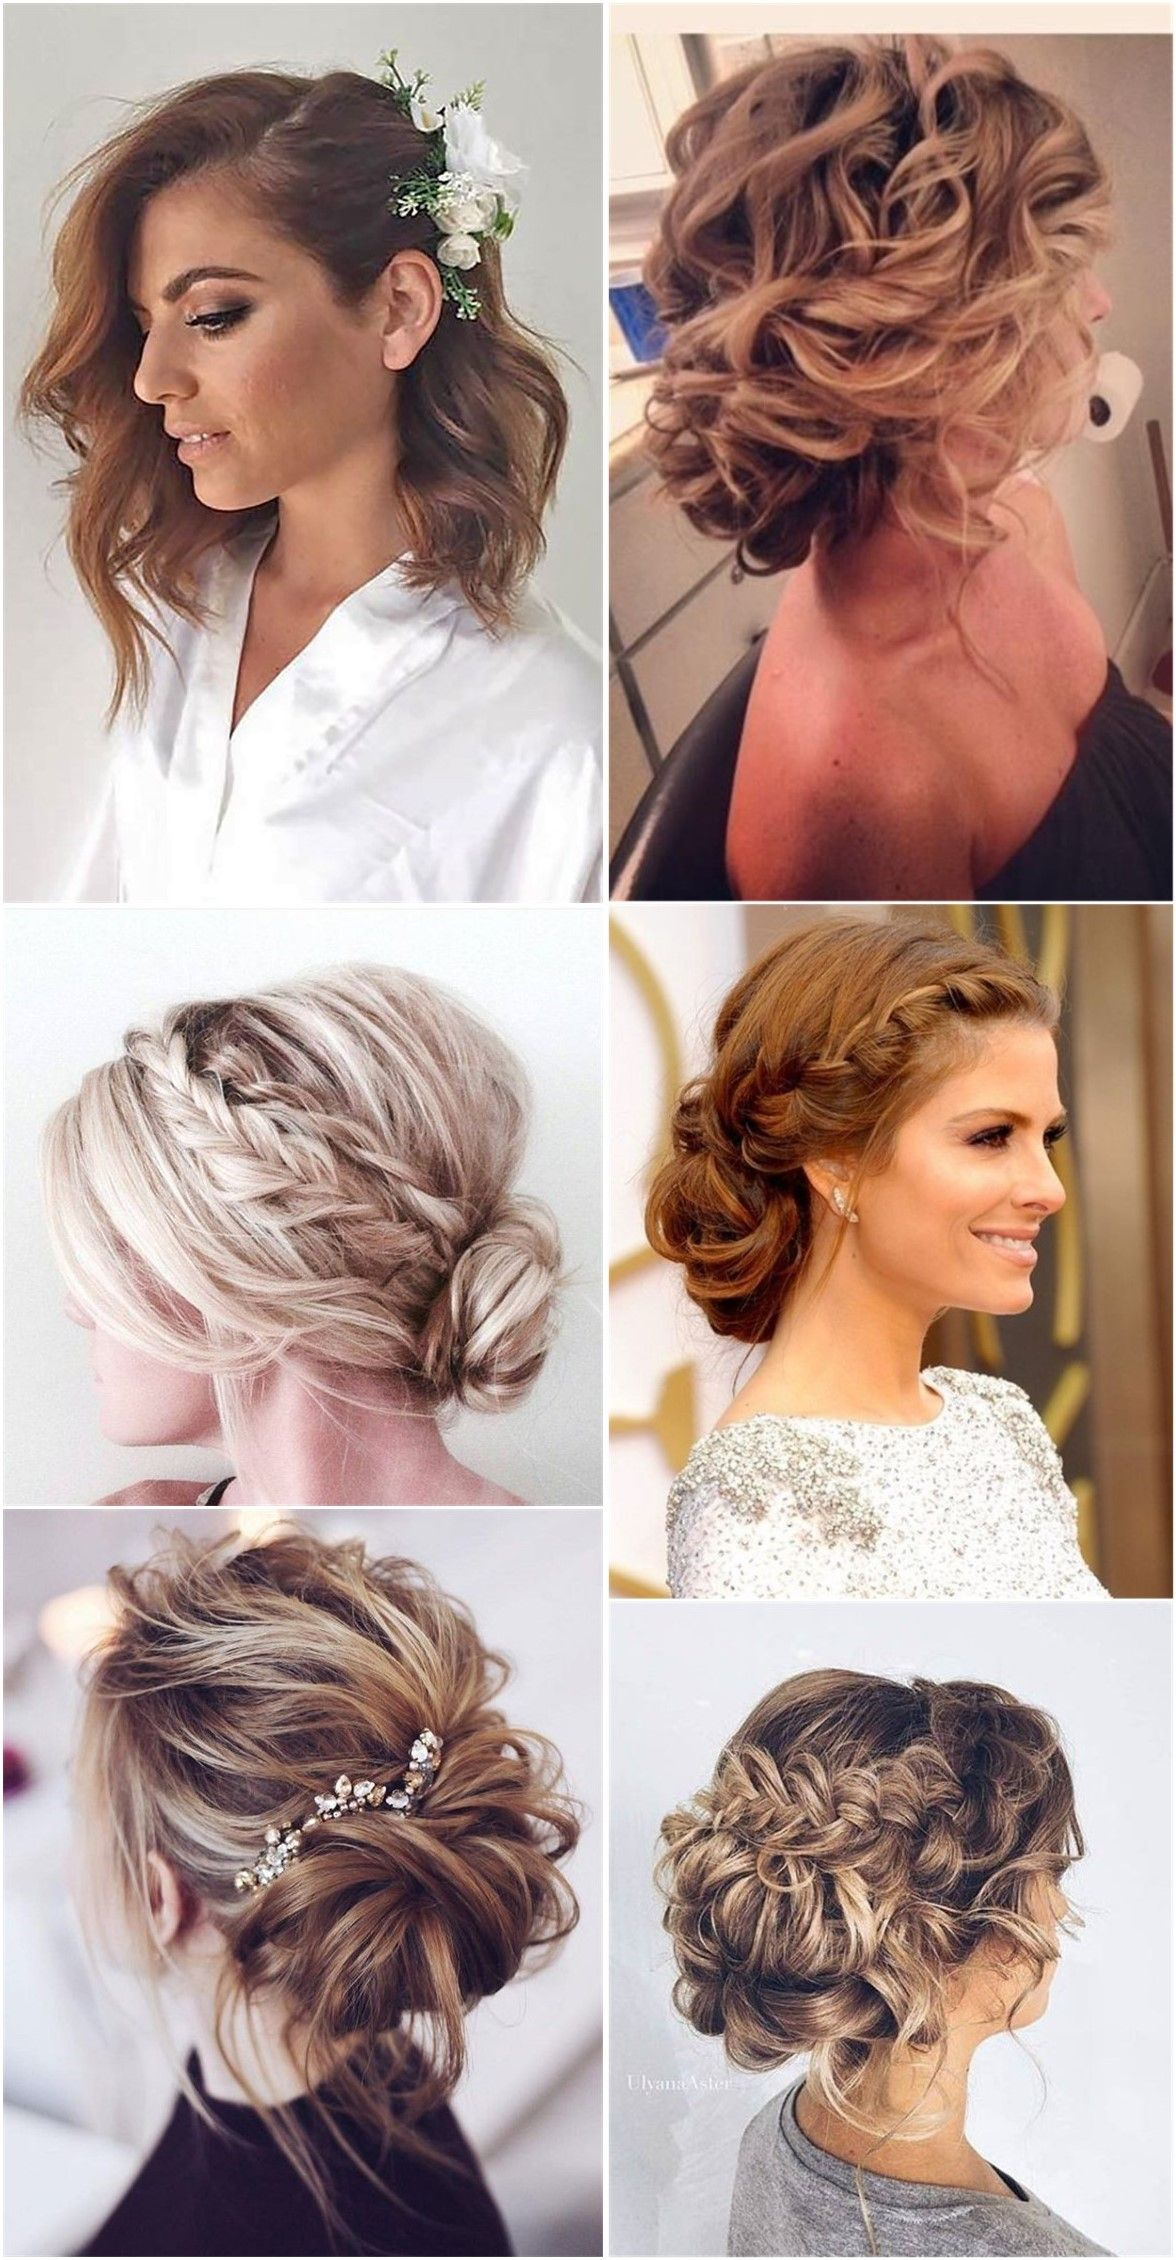 24 Lovely Medium Length Hairstyles For 2020 Weddings Weddinginclude Hair Styles Medium Length Hair Styles Medium Hair Styles